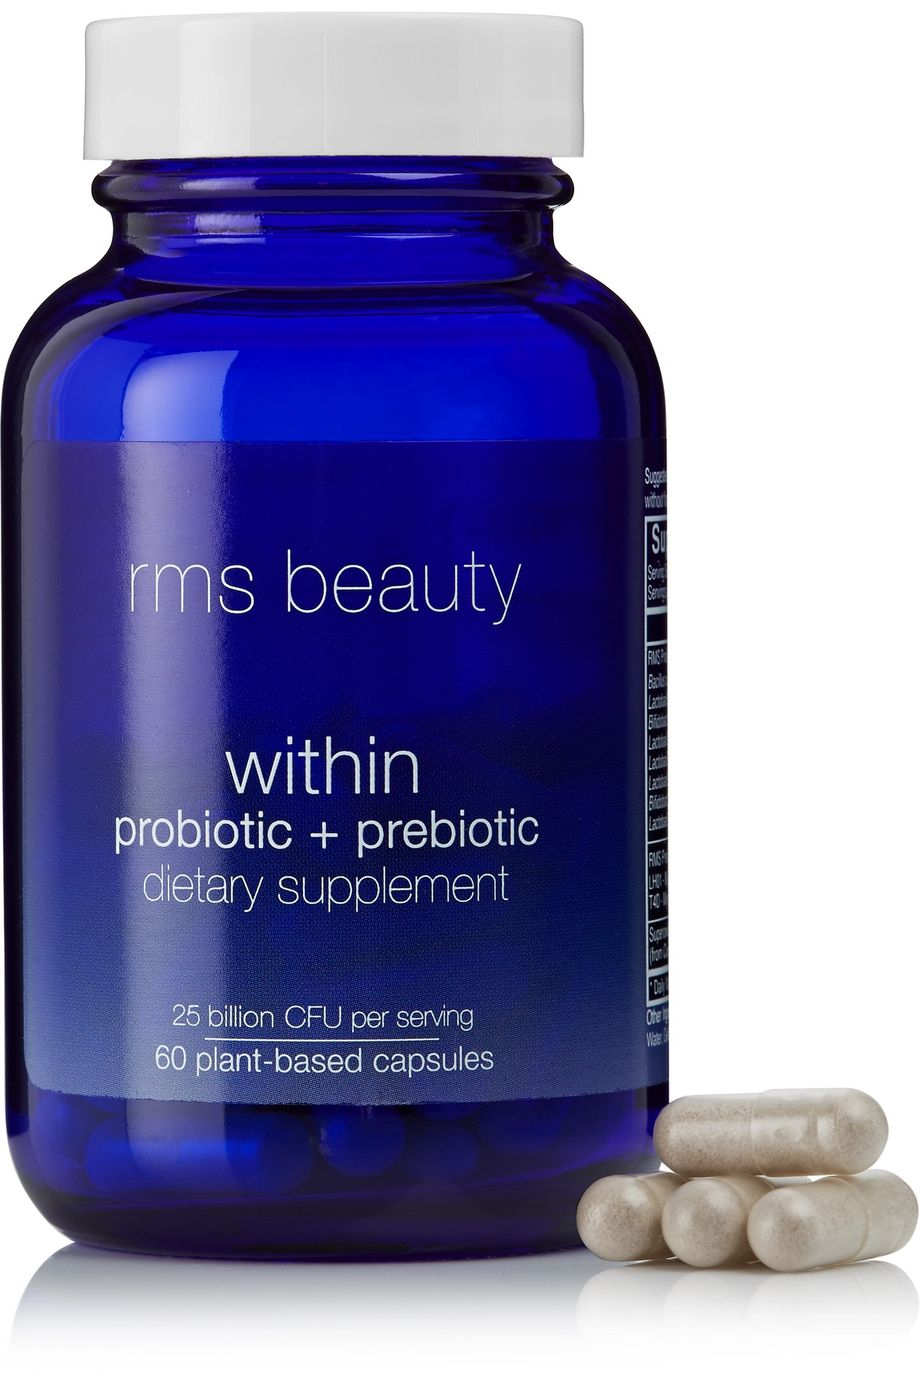 RMS Beauty Within Probiotic + Prebiotic Dietary Supplement, 60 capsules